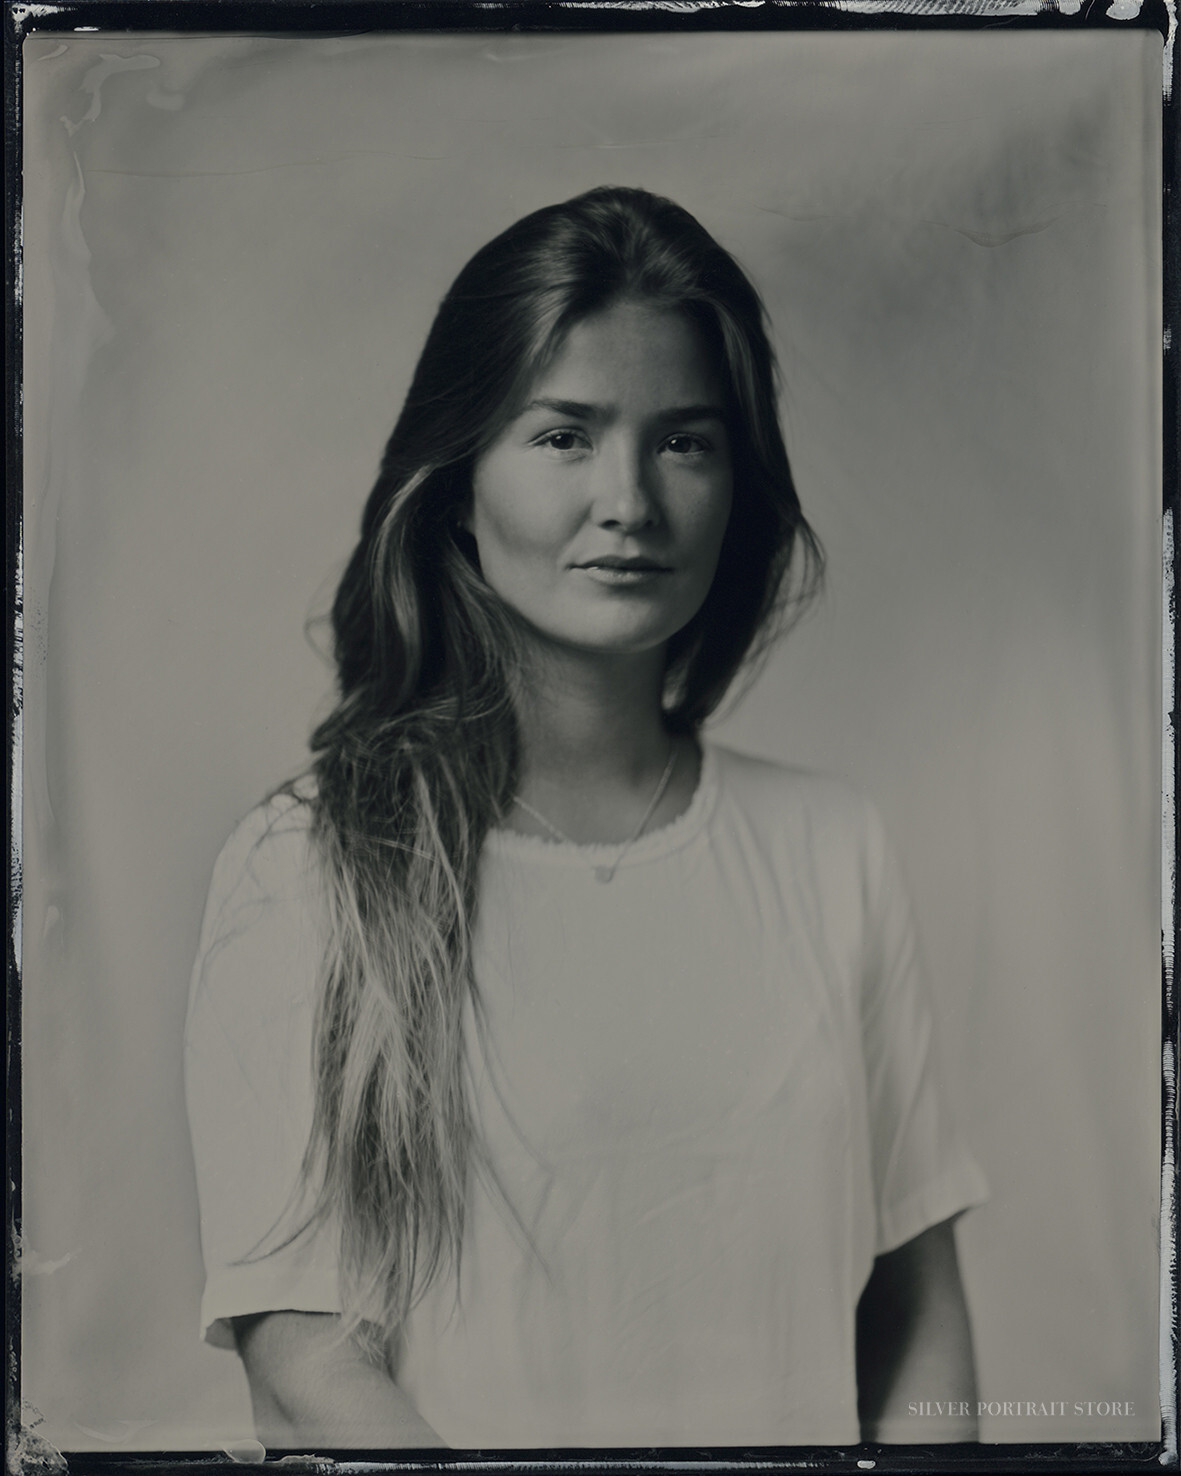 Maria-Silver Portrait Store-Scan from Wet plate collodion-Tintype 10 x 12 cm.